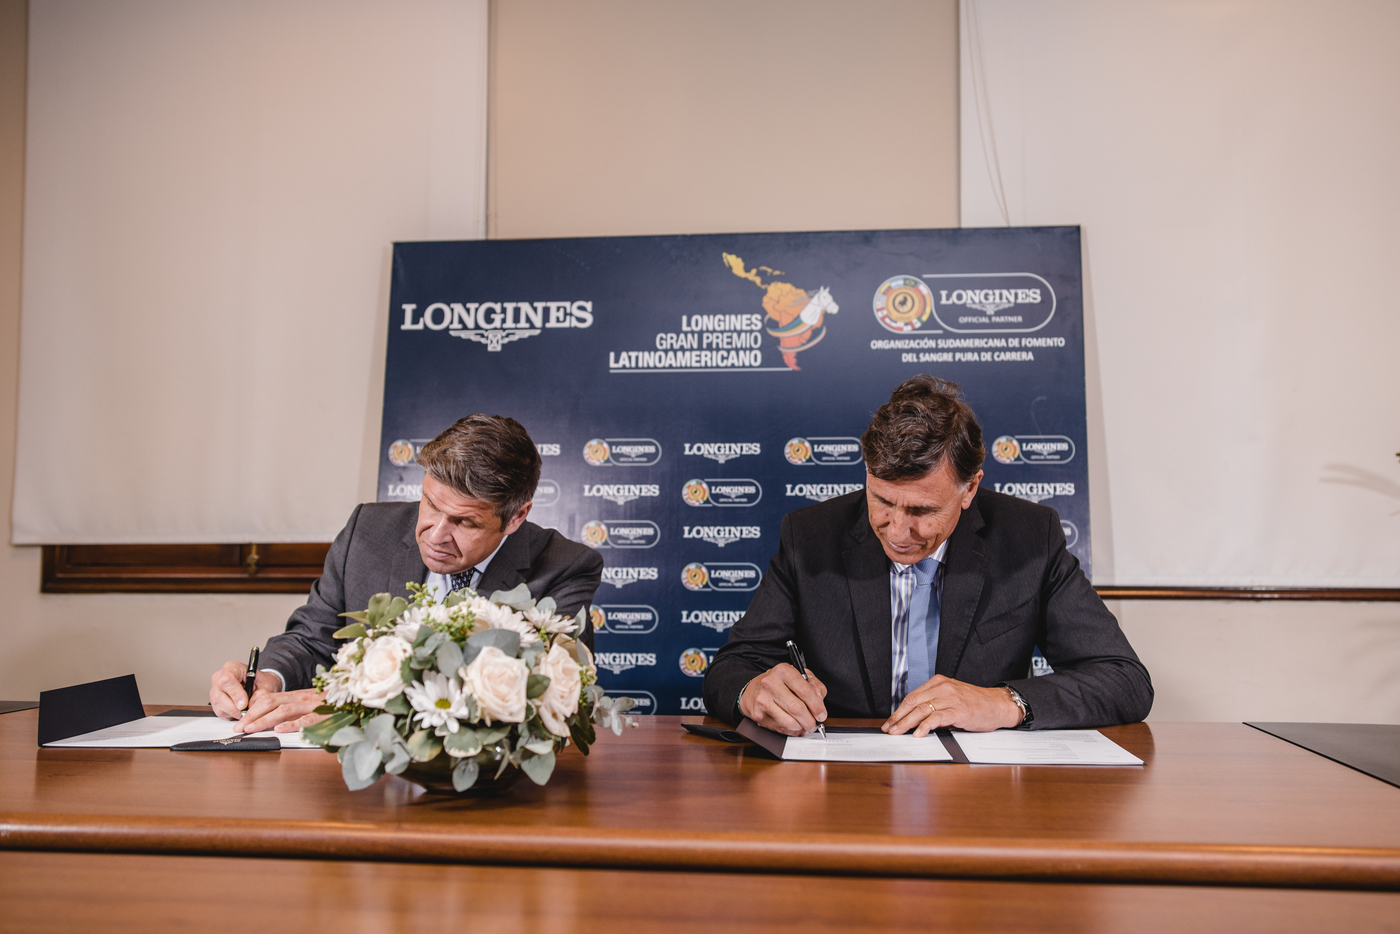 Longines Flat Racing Event: Roman Rosso and Wilson Moreyra claimed victory at the 2018 Longines Gran Premio Latinoamericano  3